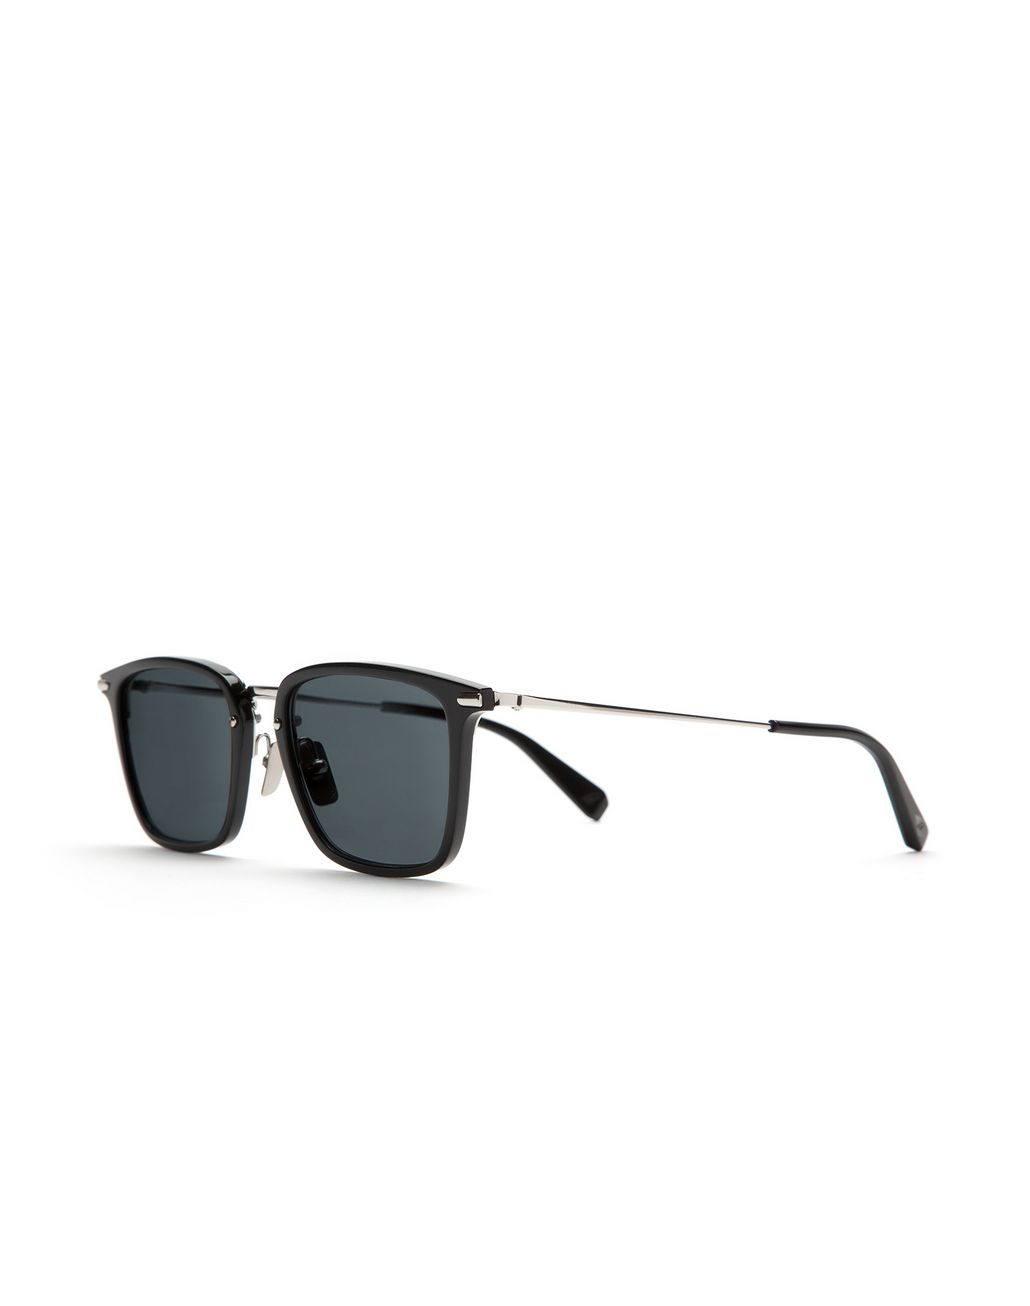 BRIONI Shiny Black Squared Sunglasses with Gray Lenses  Sunglasses [*** pickupInStoreShippingNotGuaranteed_info ***] r